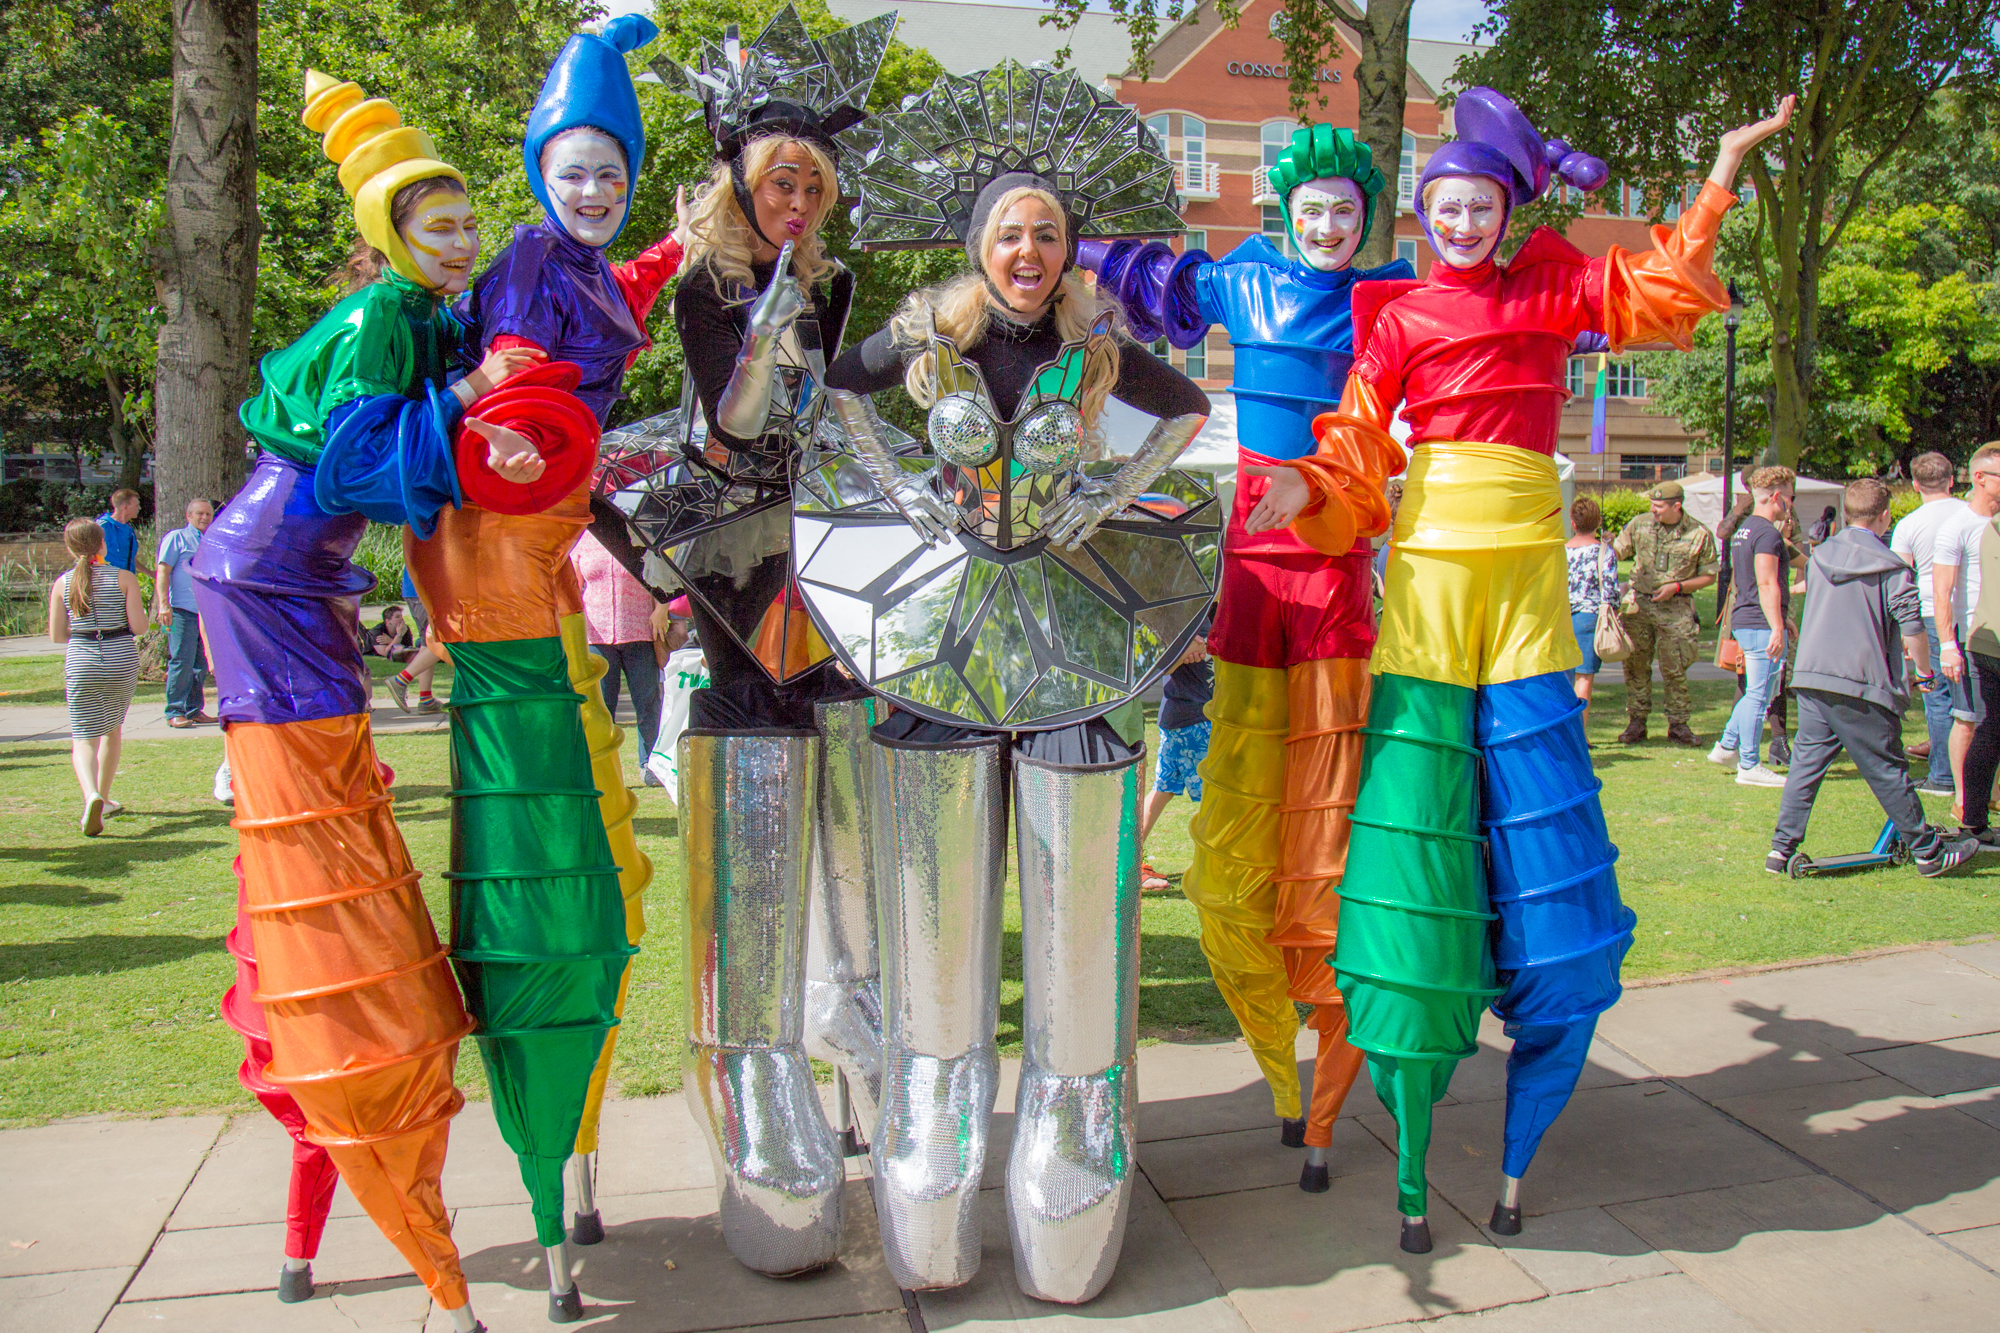 The gorgeous girls and rainbow stilt walkers